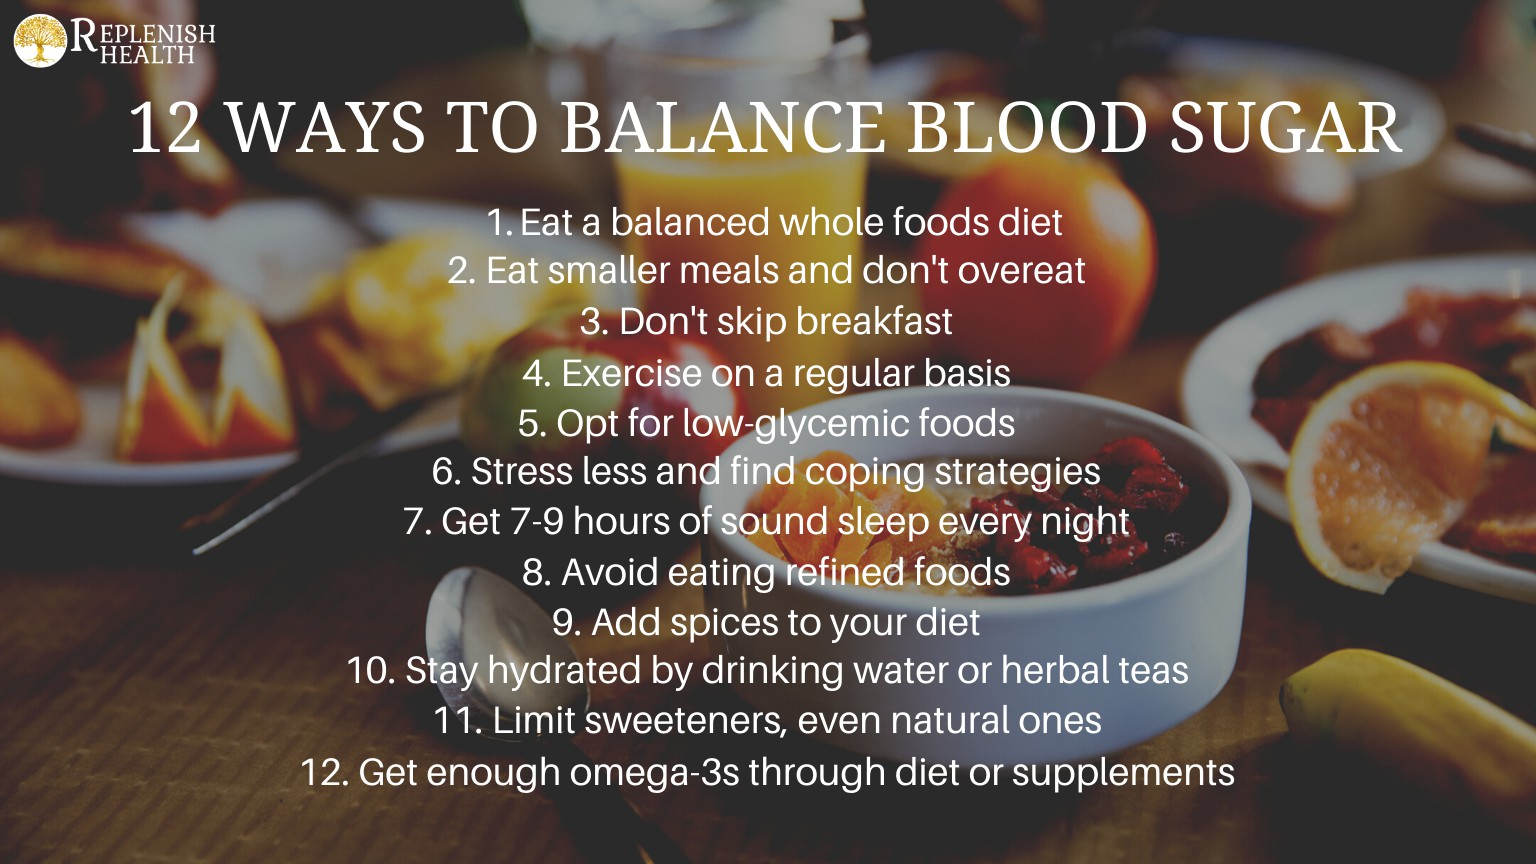 An image of 12 ways to balance blood sugar.